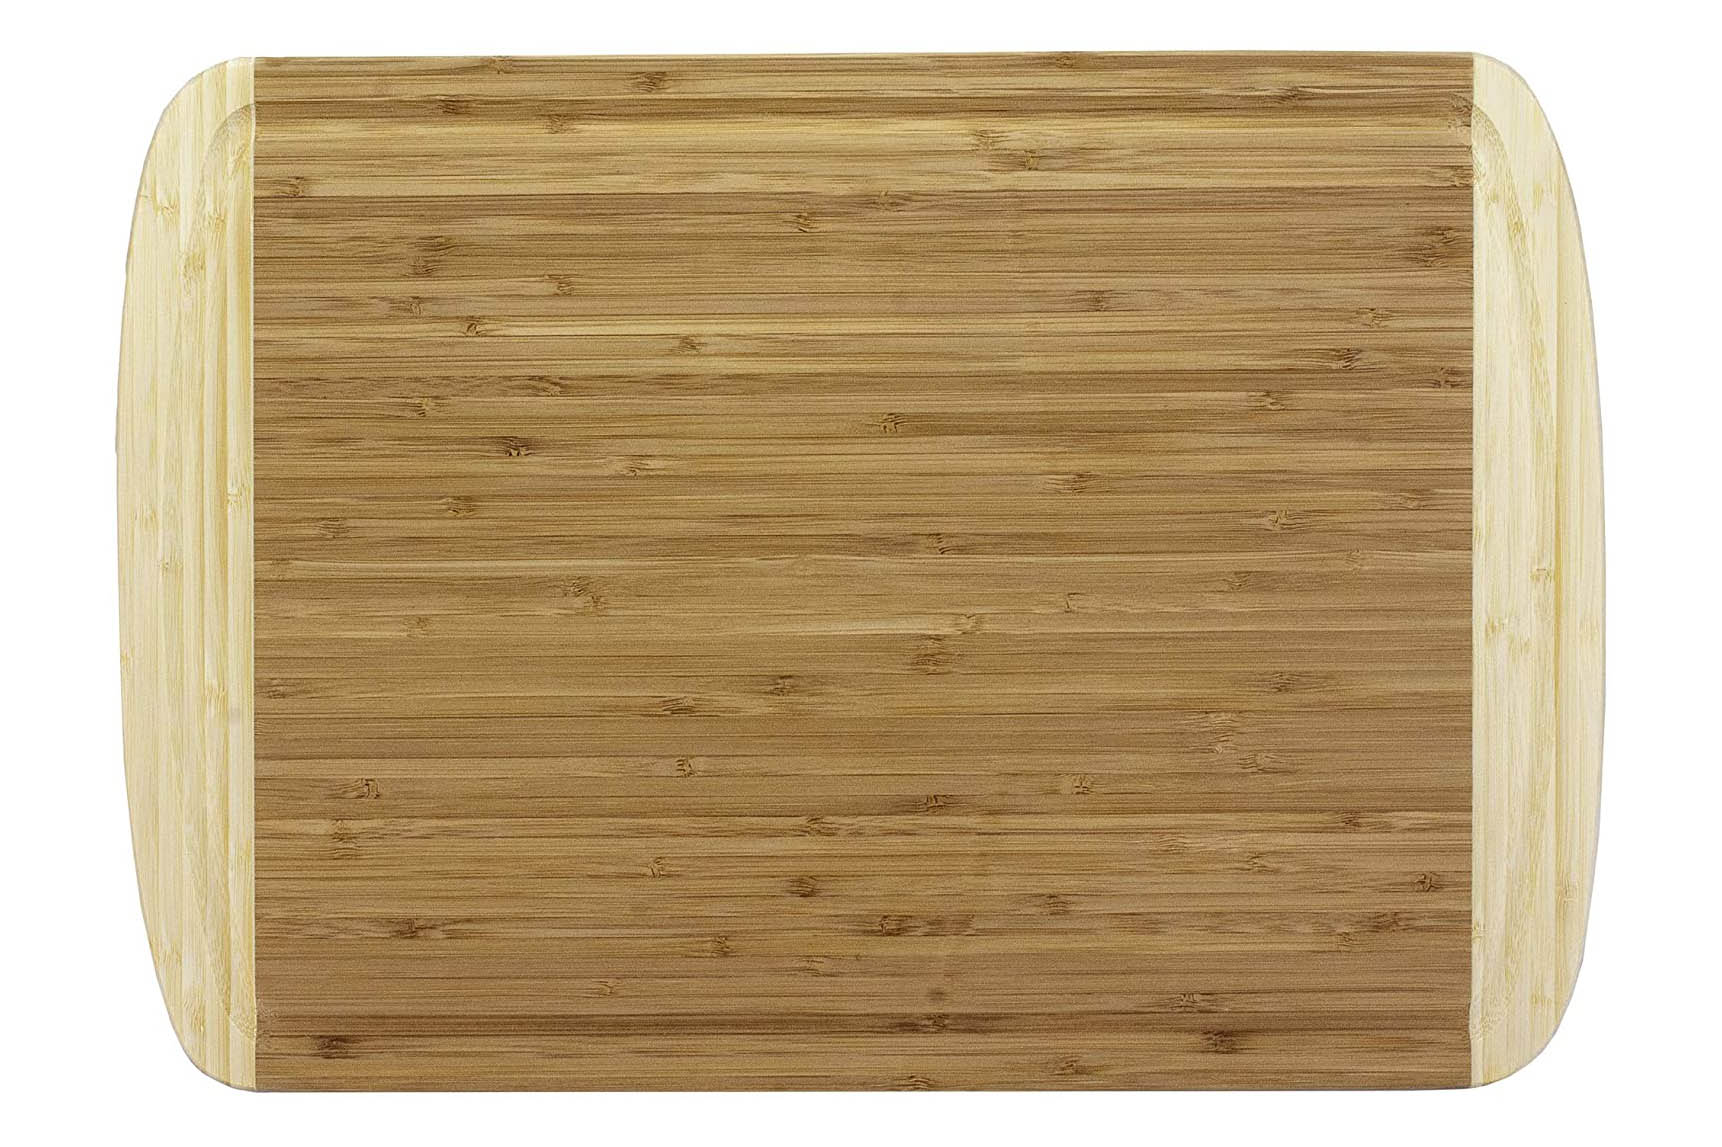 Totally Bamboo Kona Bamboo Carving & Cutting Board with Juice Groove